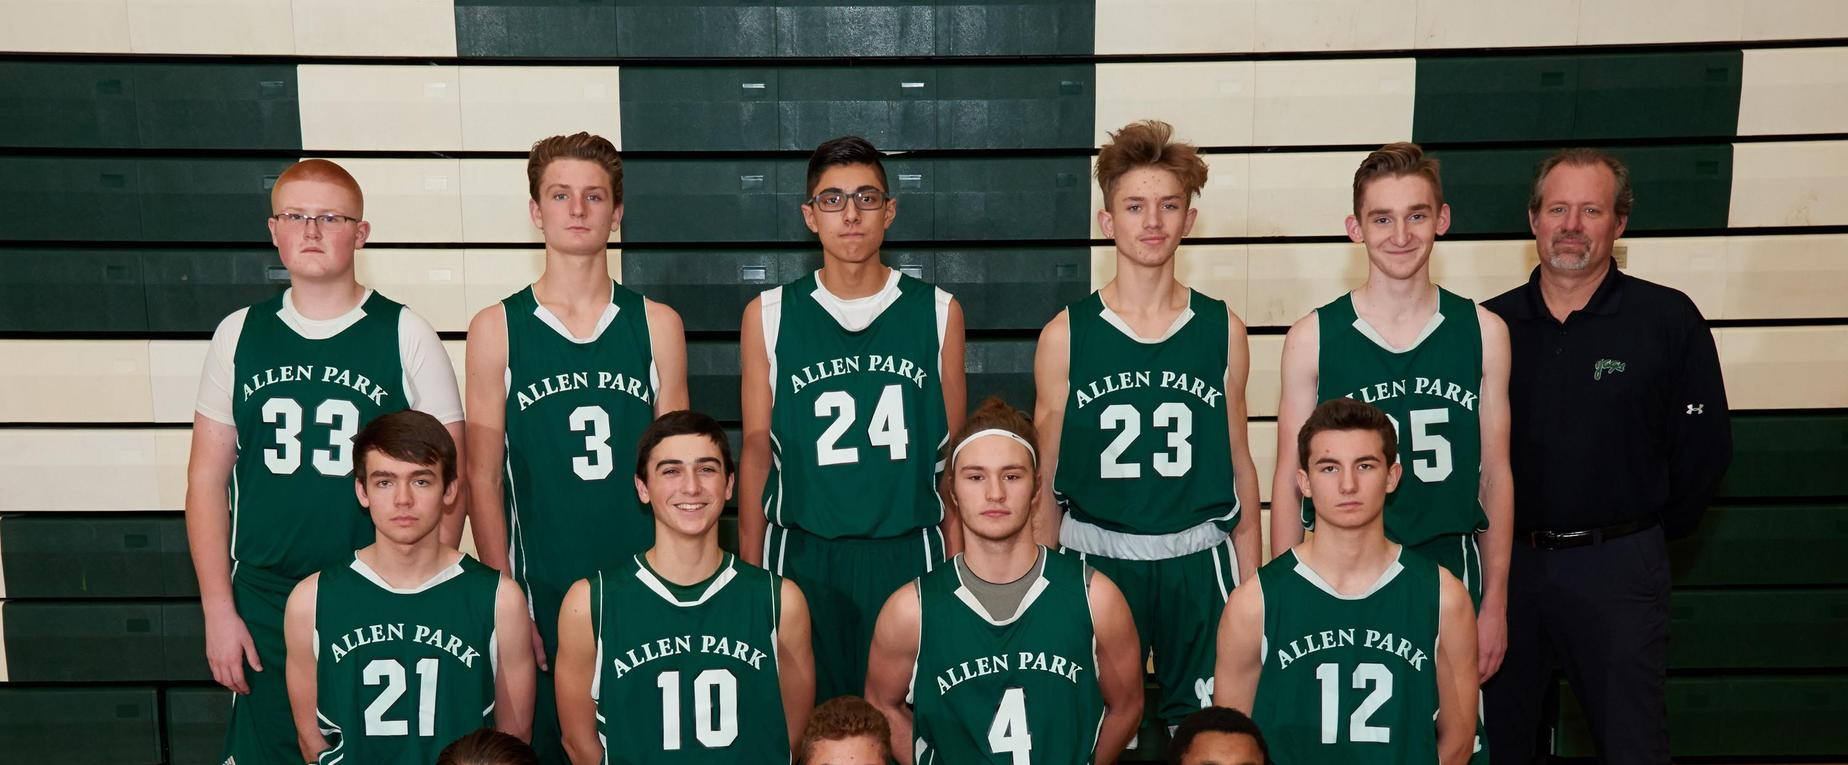 HS JV basketball